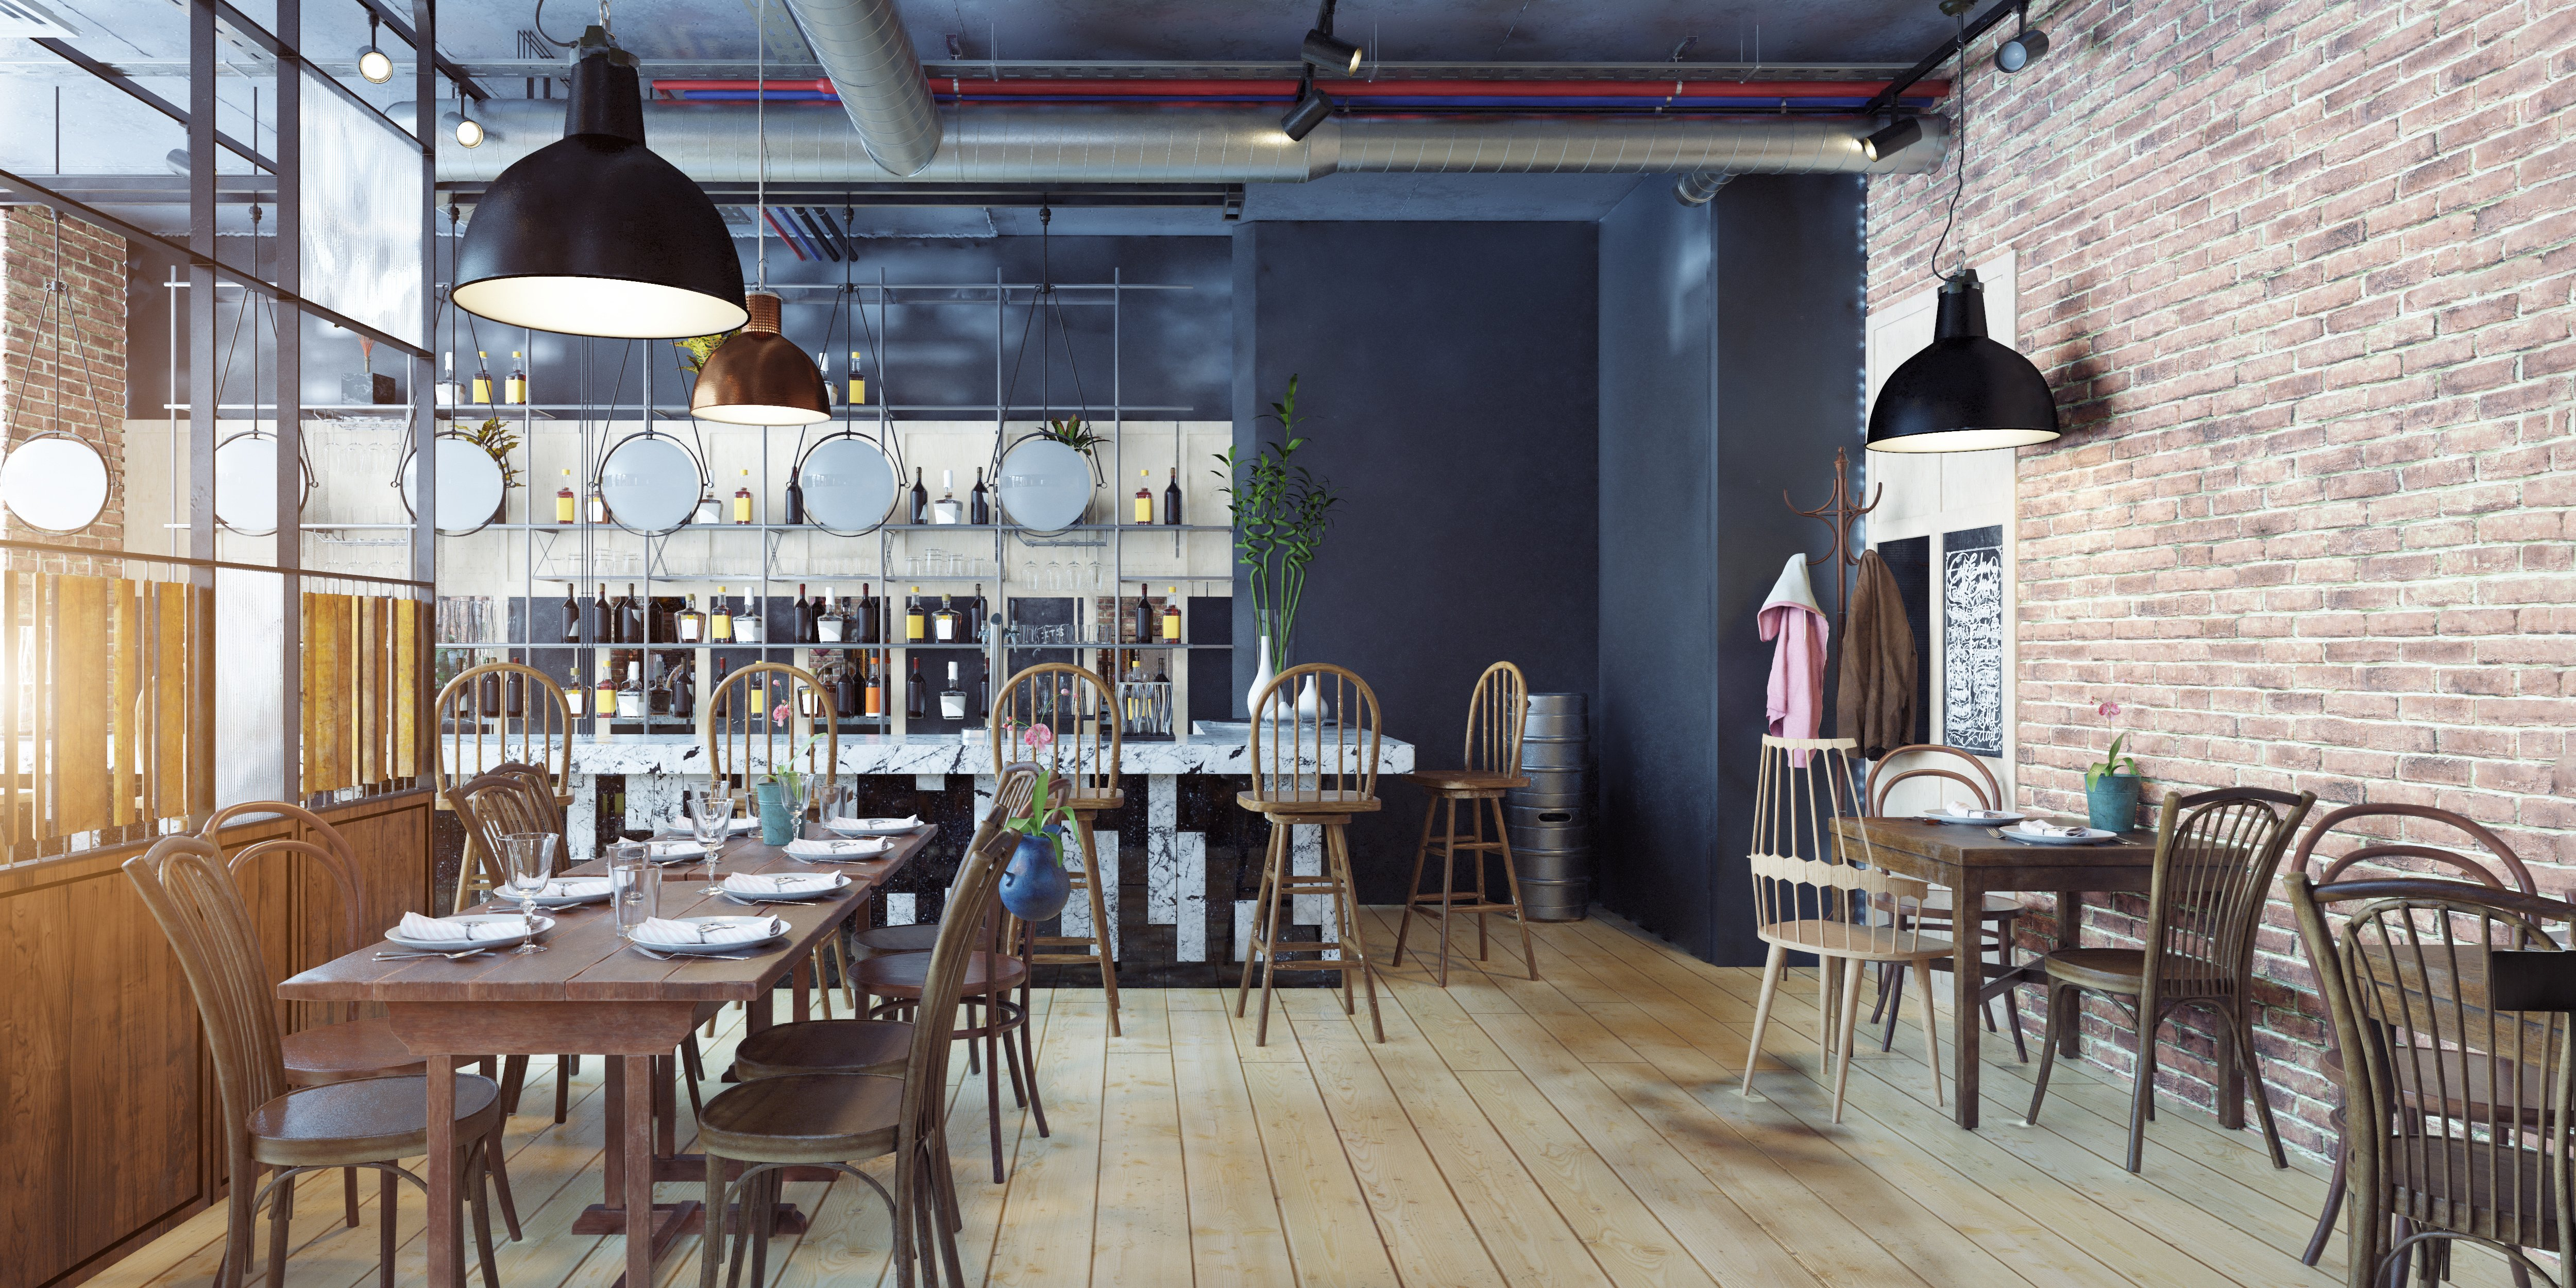 coffee shop with wooden chairs and tables